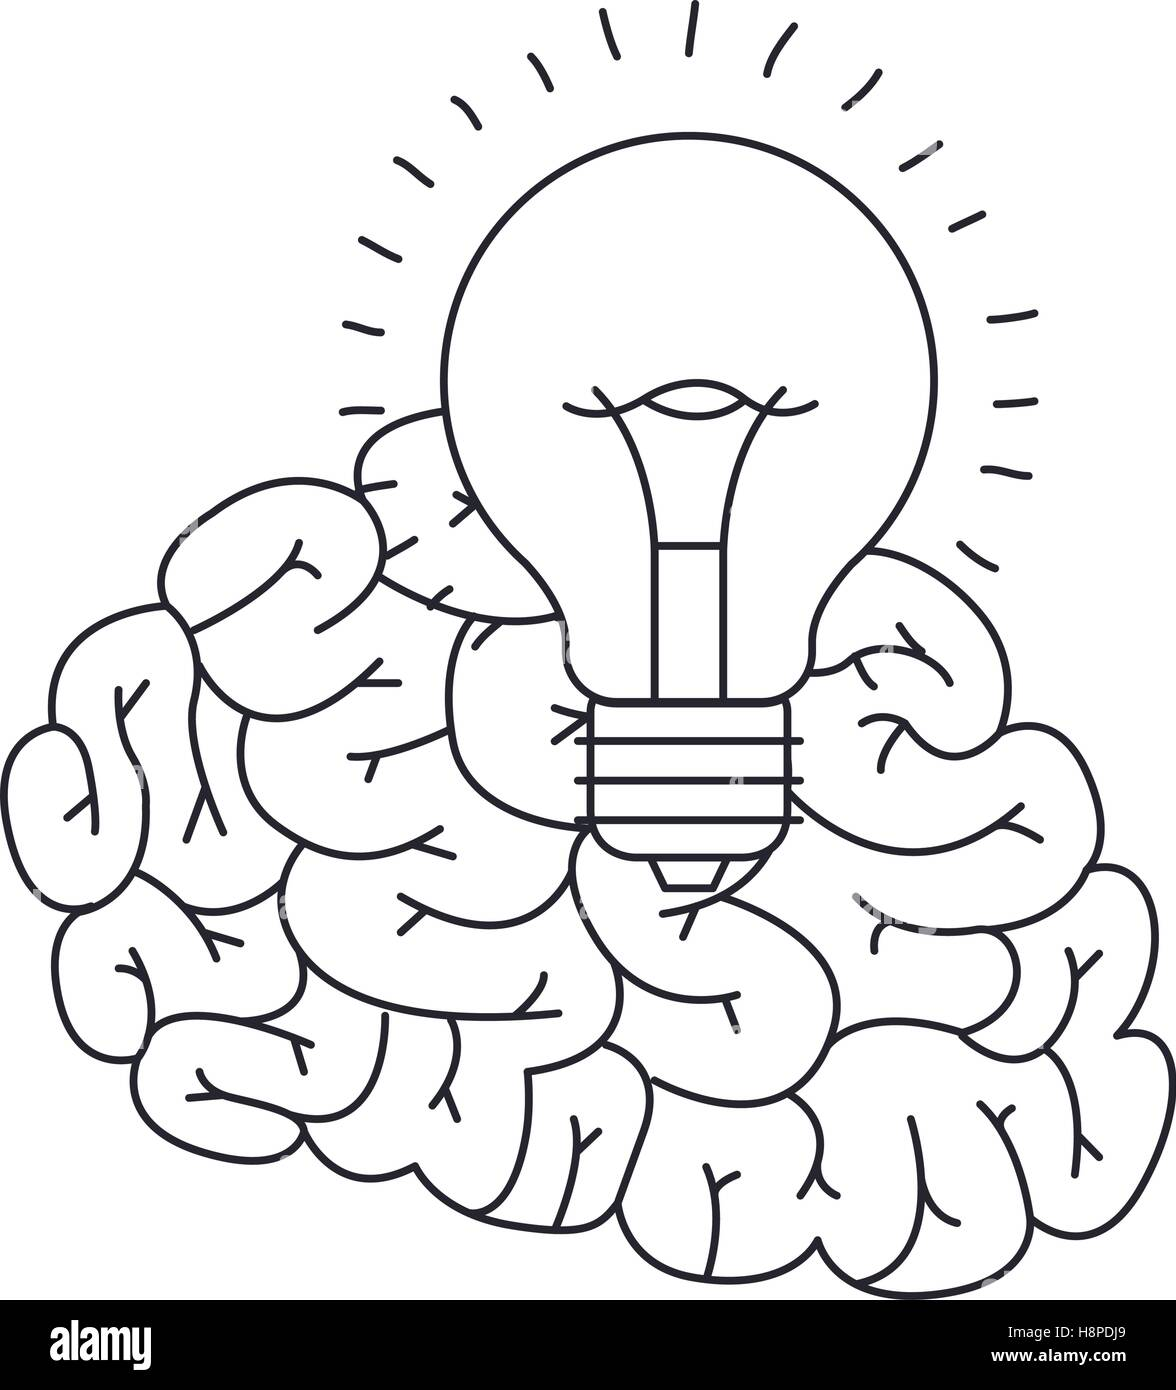 Brain and bulb draw icon big idea creativity imagination and stock brain and bulb draw icon big idea creativity imagination and inspiration theme isolated design vector illustration ccuart Image collections